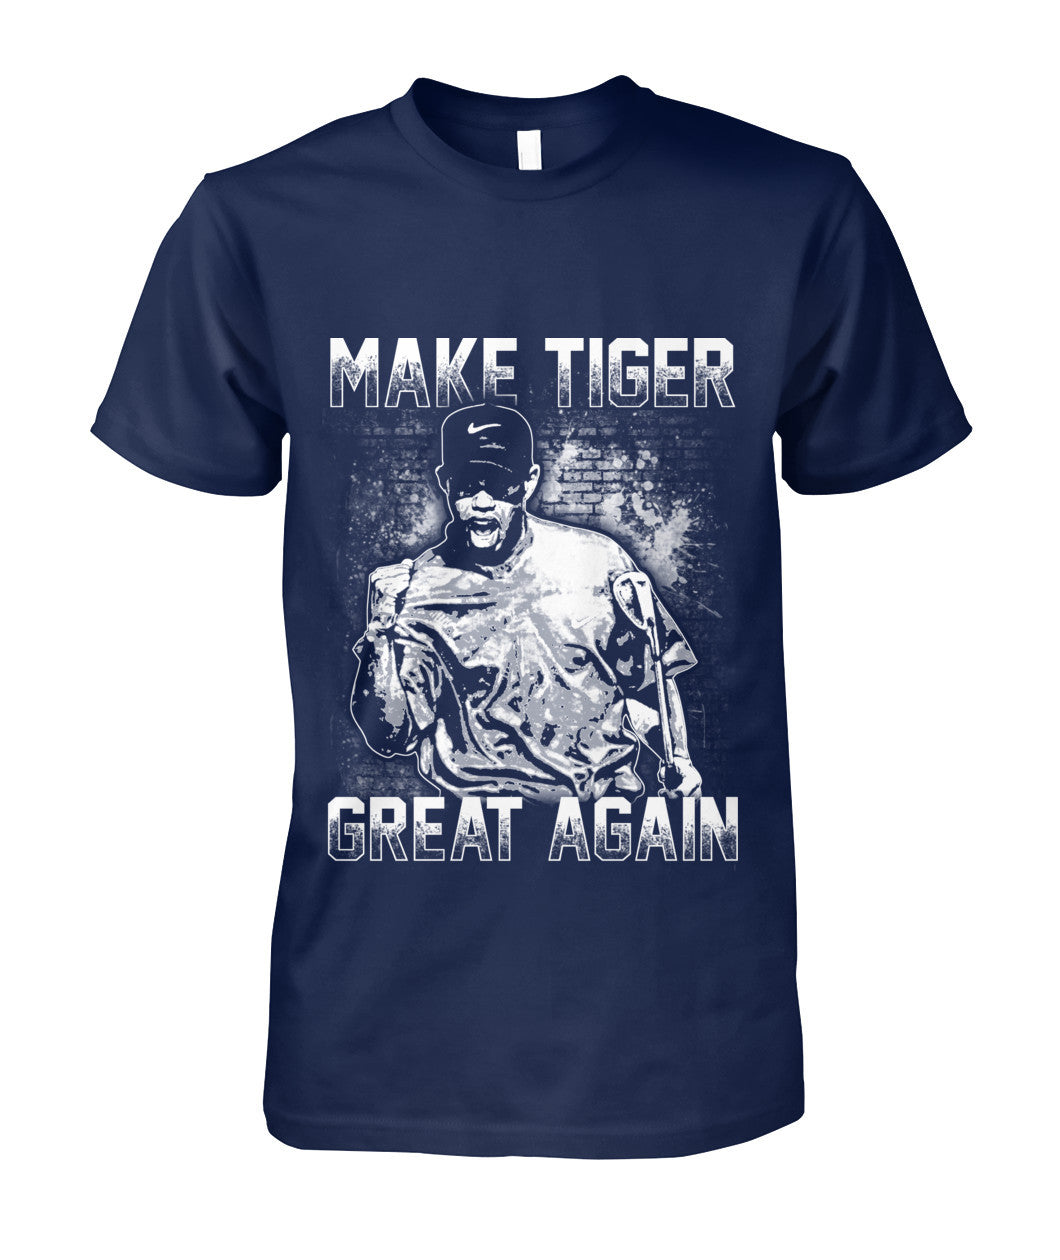 Buy Make Tiger Great Again Shirt